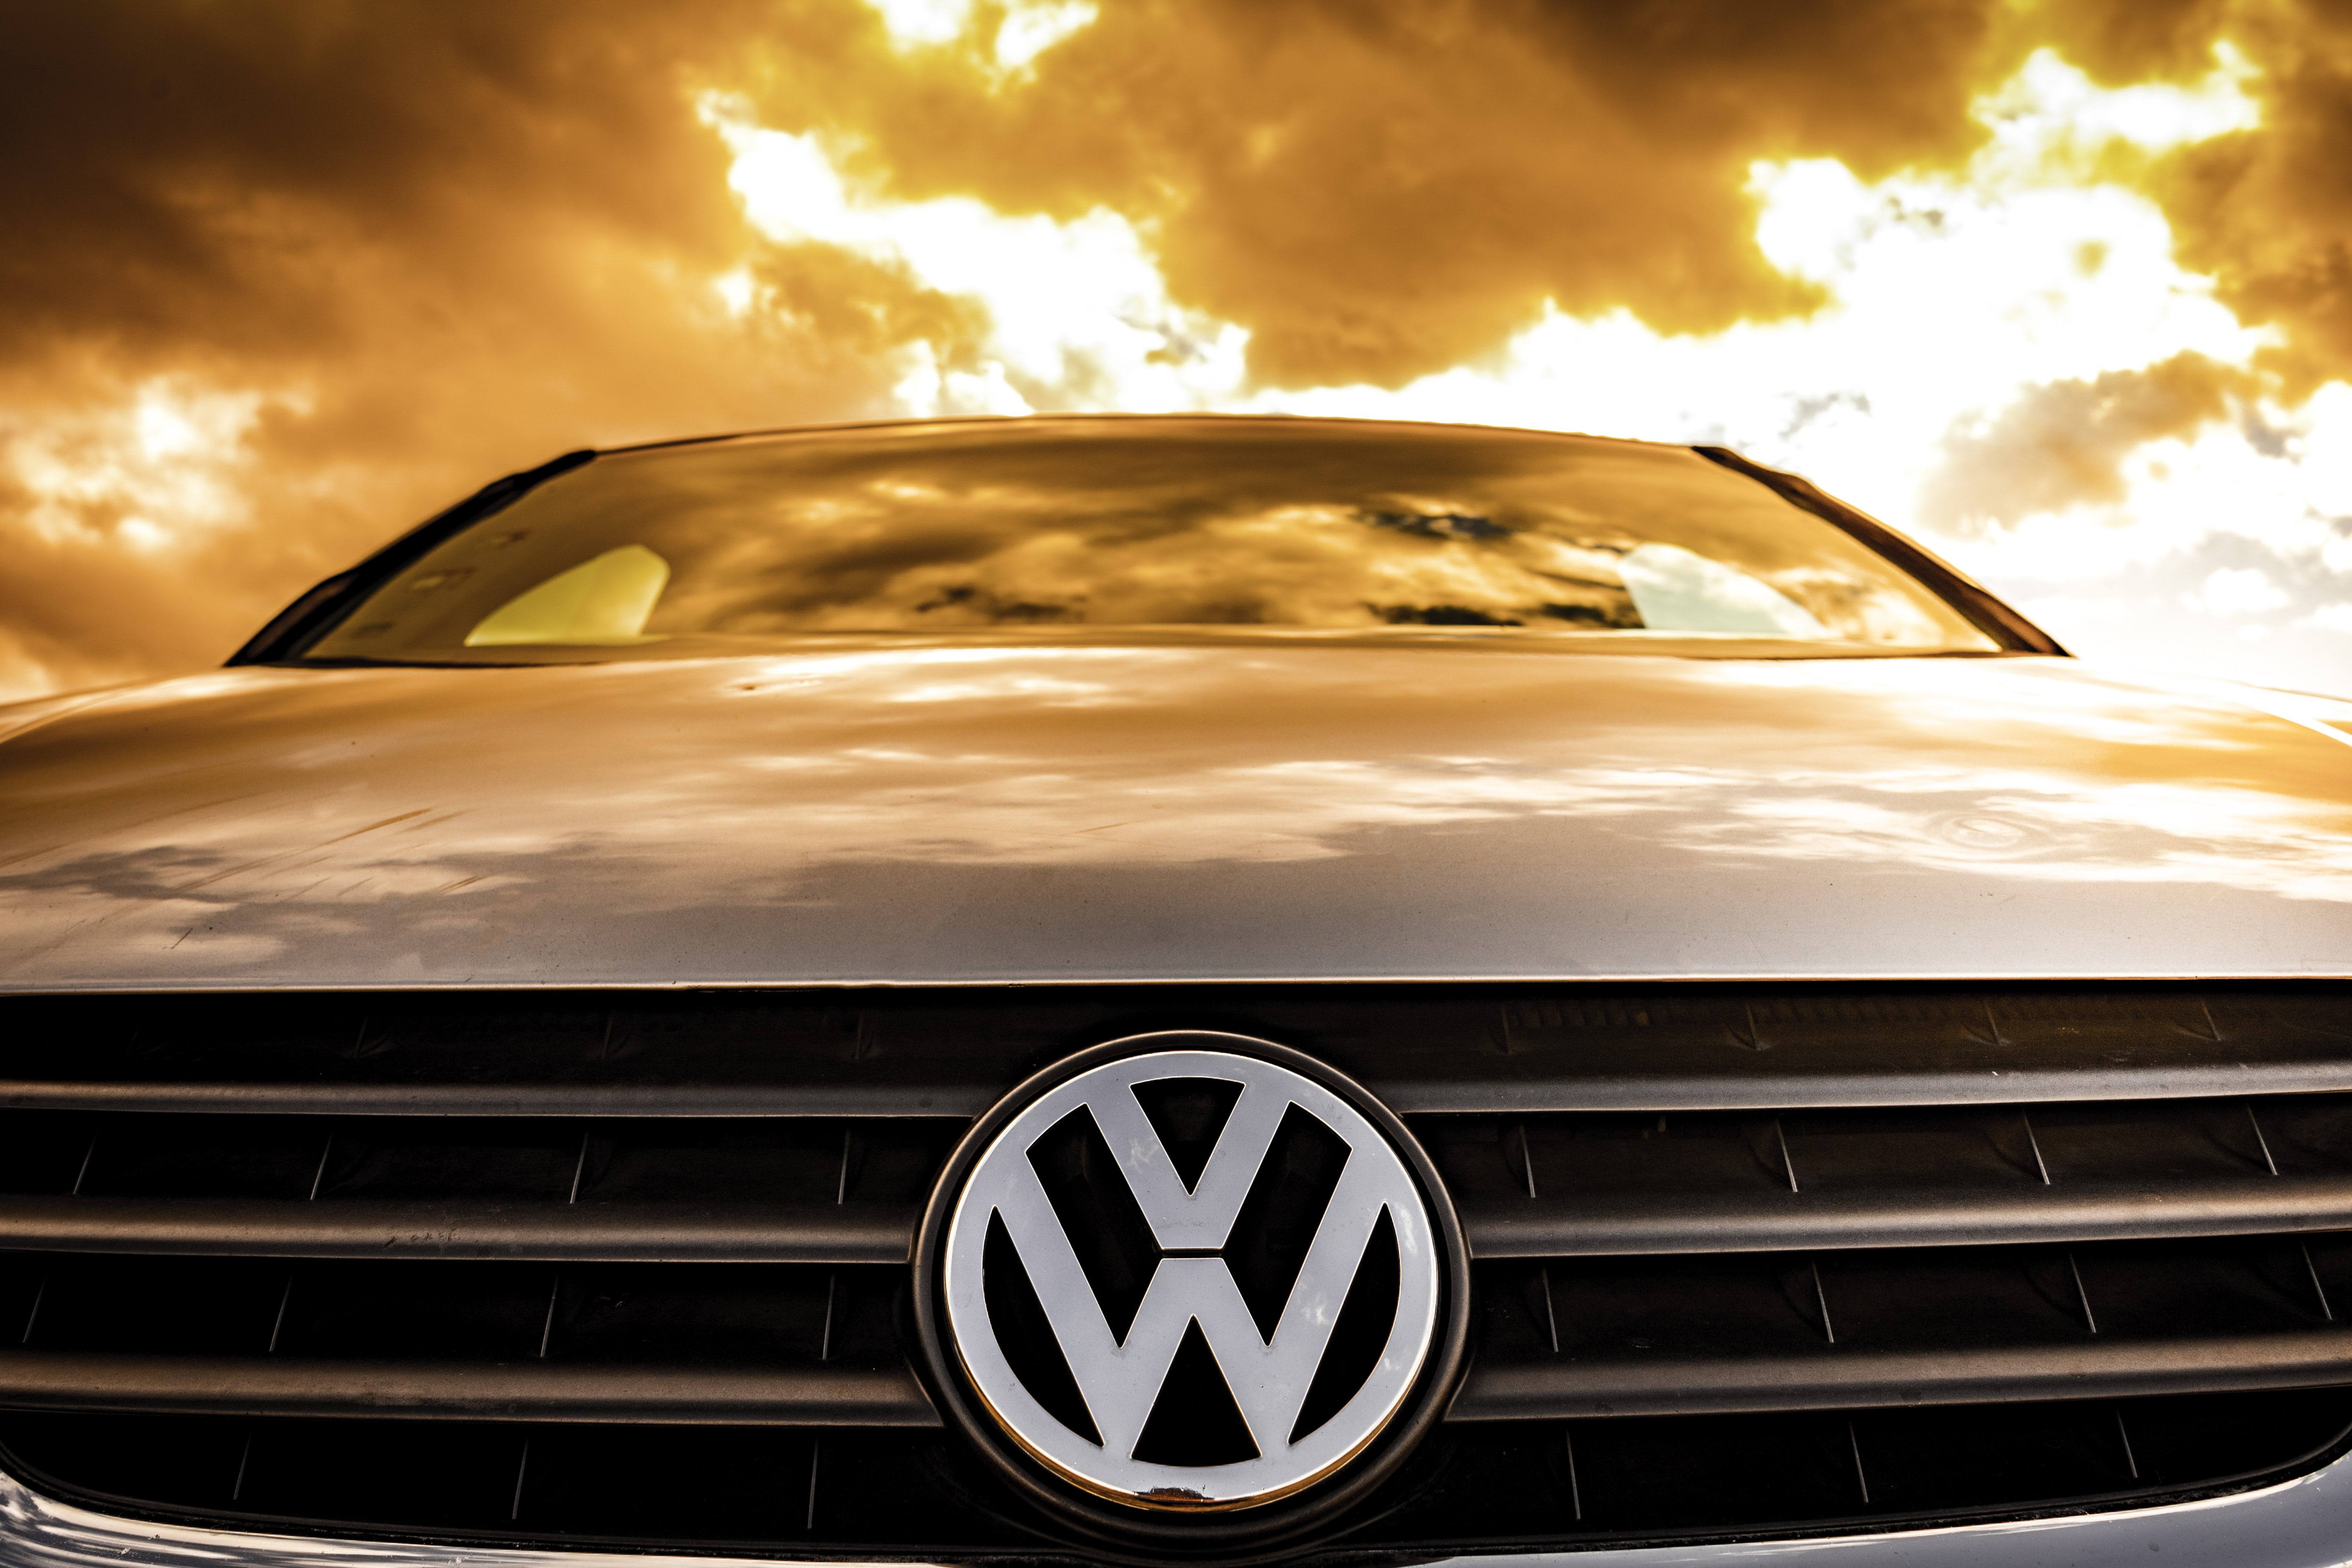 close-up photography of silver Volkswagen car